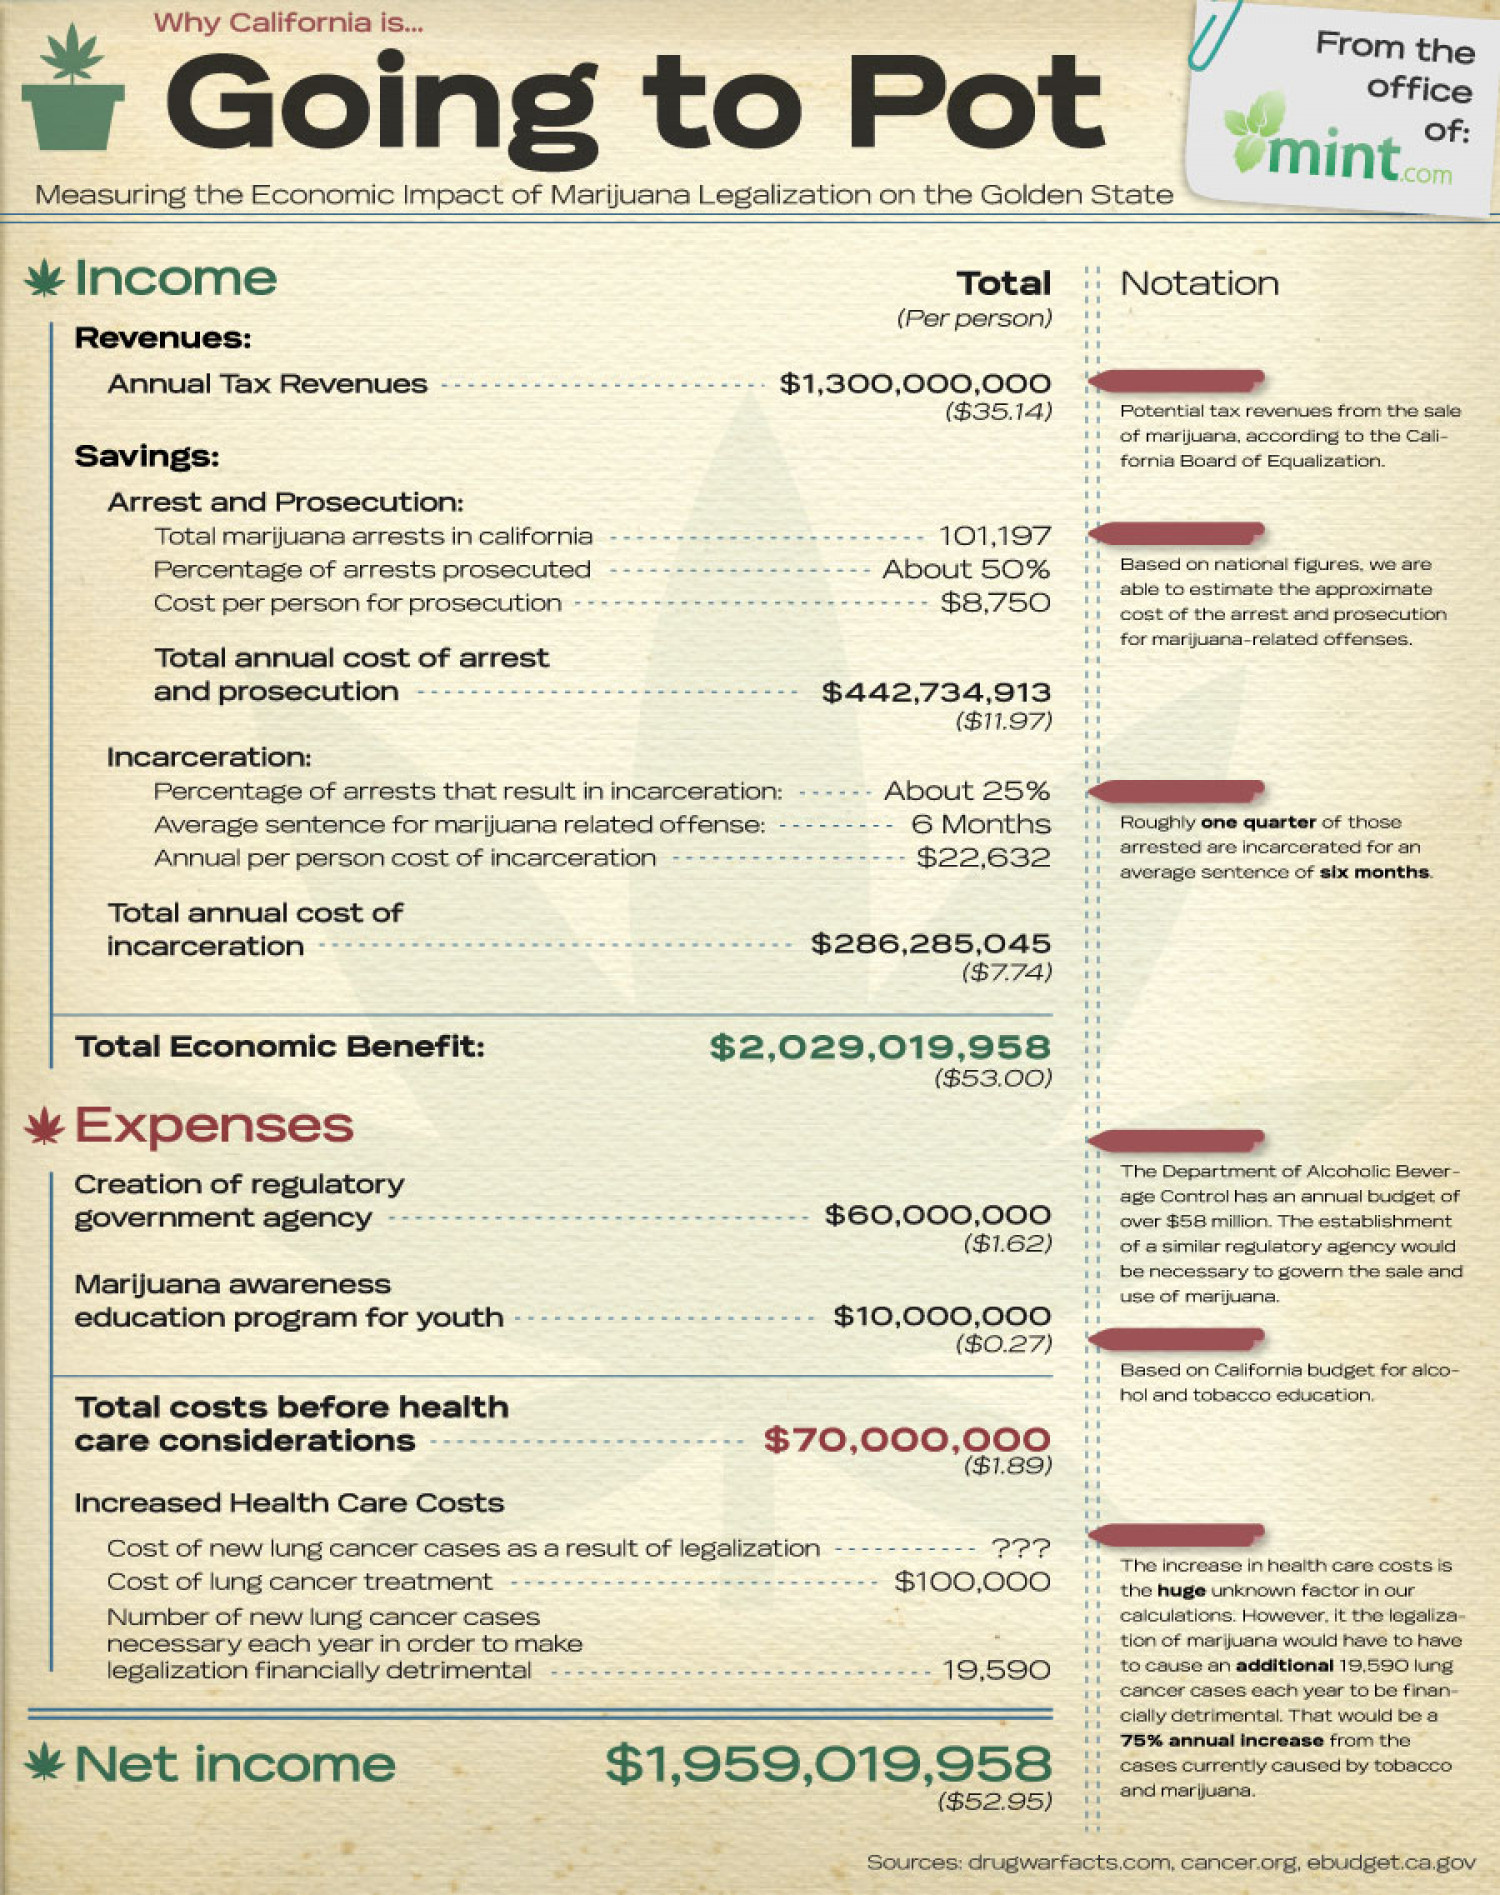 Why California Is Going to Pot: Measuring the Economic Impact of Legalizing Marijuana in the Golden State Infographic